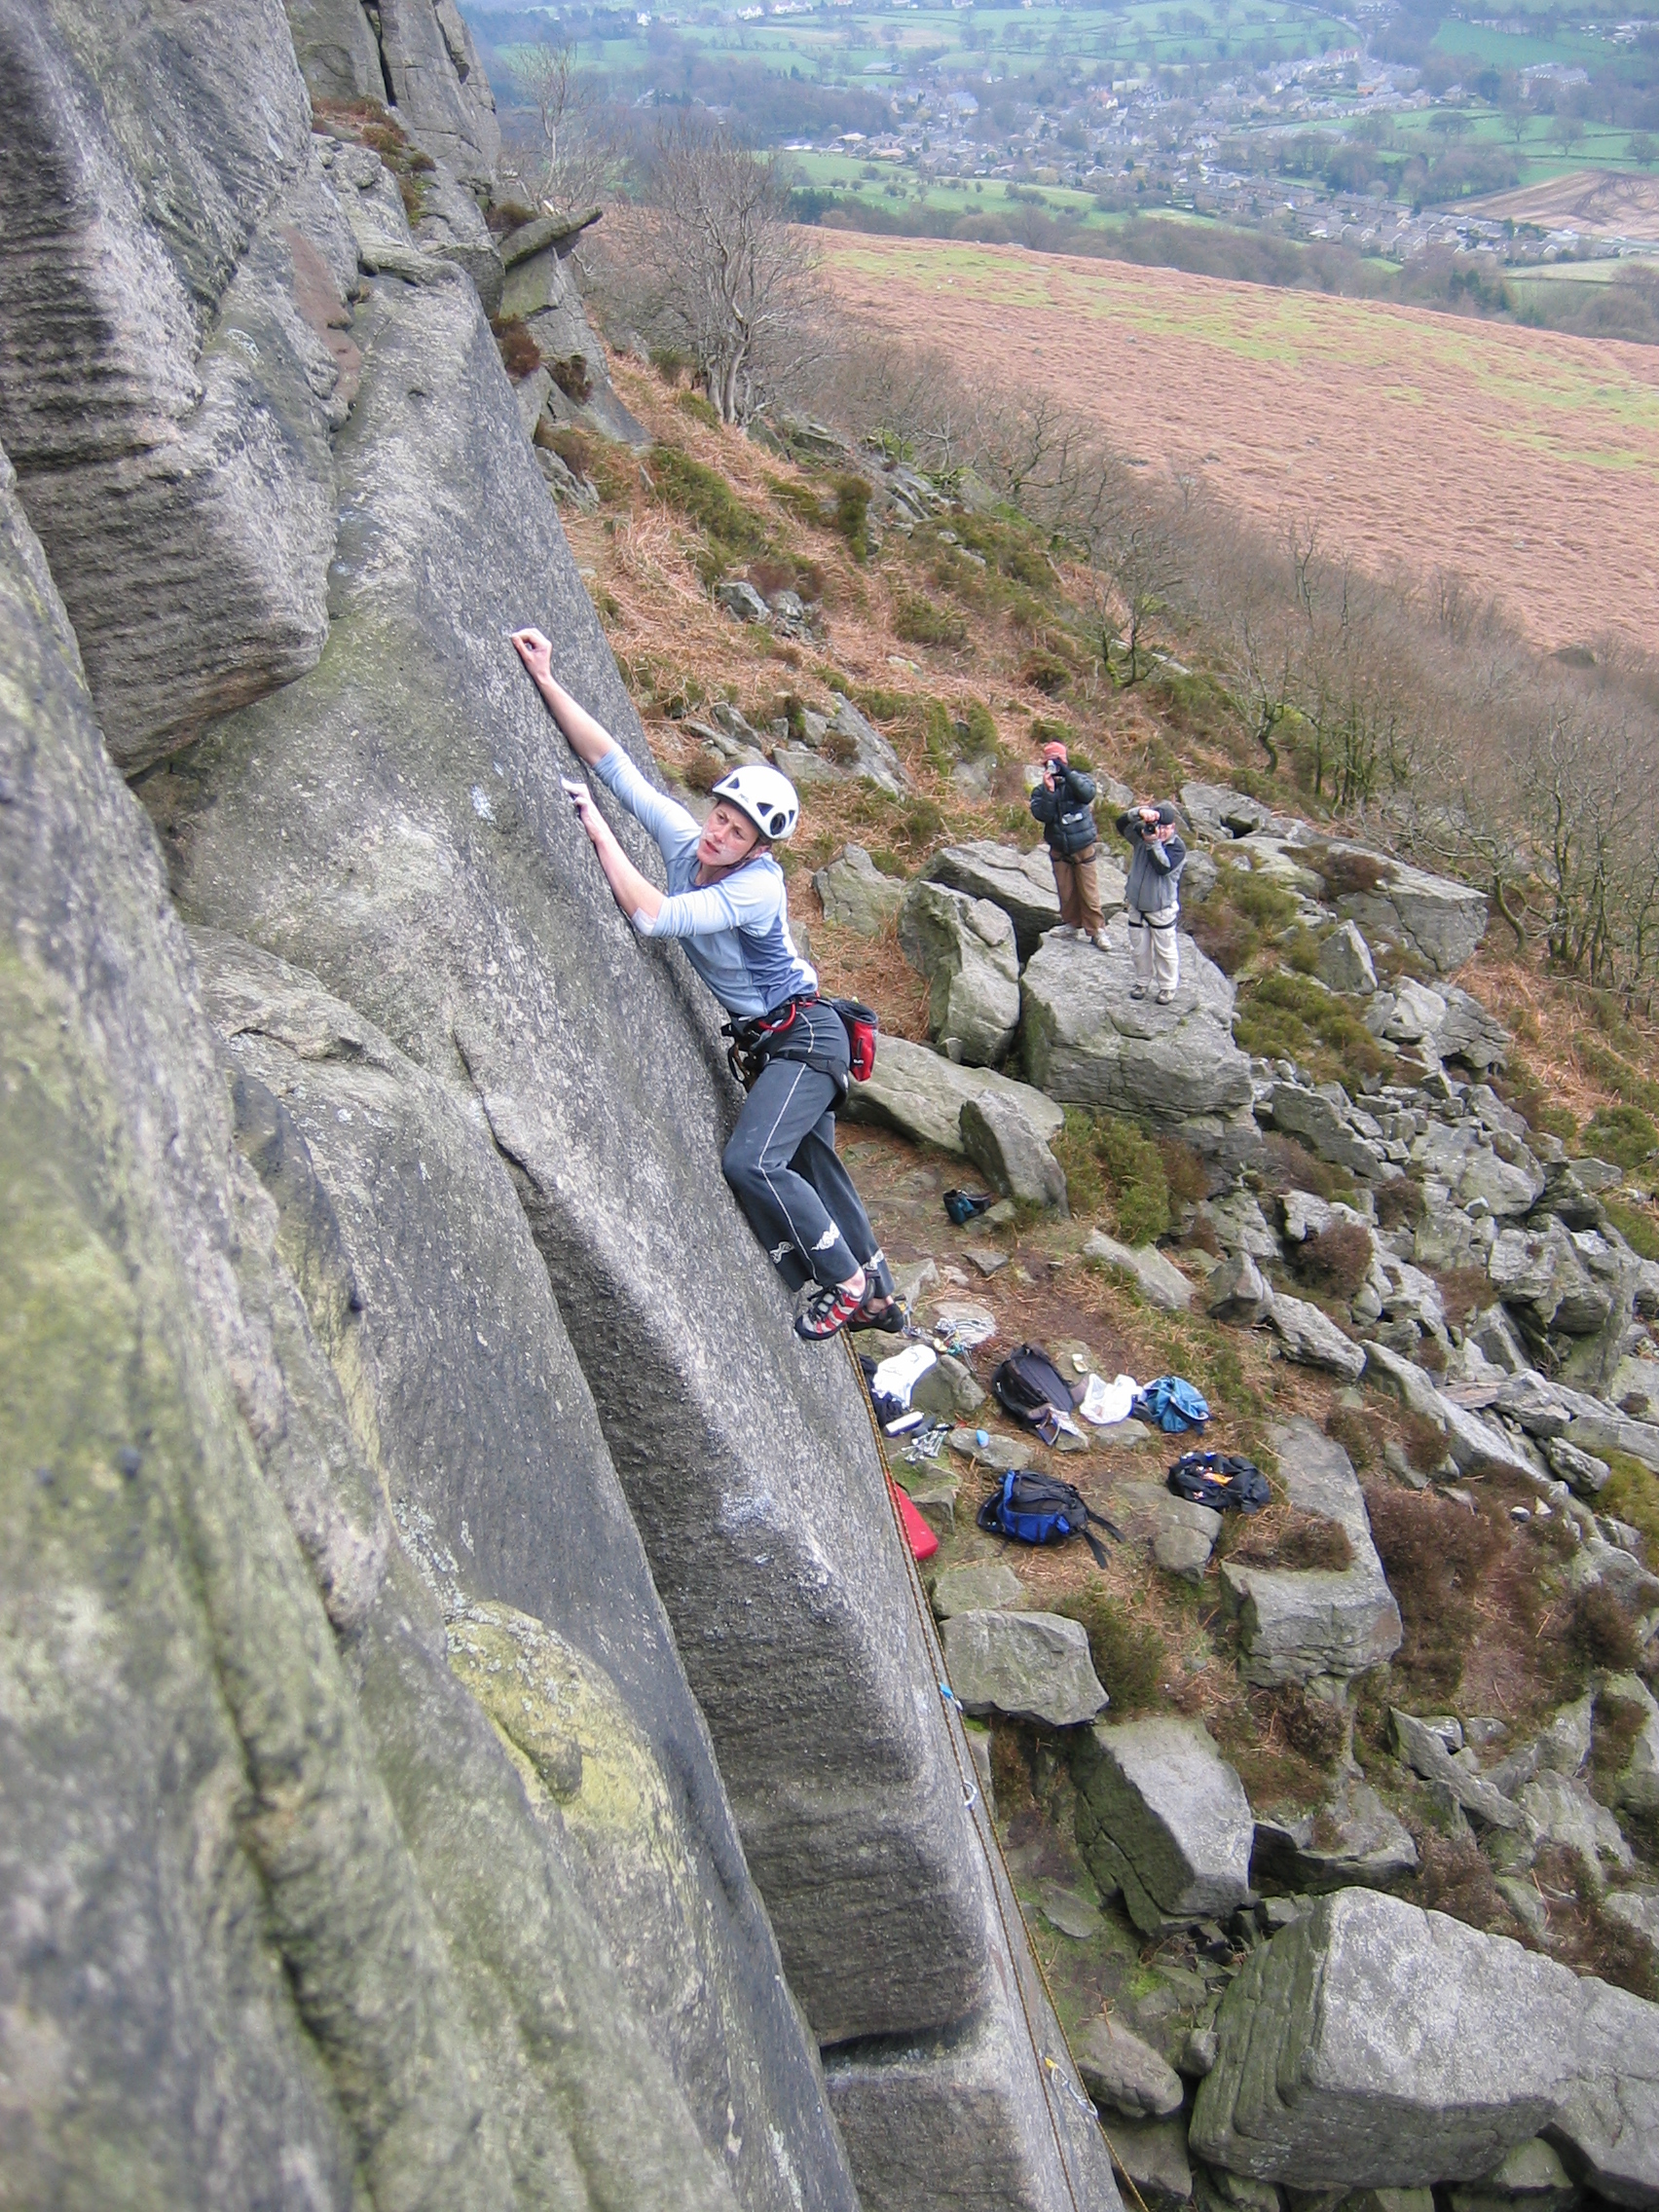 Salmon Left Hand E6 6b, Bamford Peak. I did not trust myself on this route, and I'll just have to sit with that one! This is from just over 15 years ago (!). The day before this photo I'd onsighted two E4s at the crag and was feeling good. I decided to try and onsight this route. Having completed the crux I got to the point here in the photo and froze. For some 20 minutes…. It was getting colder and colder and darker and darker and I couldn't commit. The small crimp that I'm eying up was for me just a couple of centimetres out of reach. I knew I just had to weight that left foot and go dynamically for the top. I couldn't. If only I could have let the body climb! Too concerned that I might fall badly, I asked for a rope. With one hand I tied in and climbed to the top. I had to be content with the headpoint pictured here the next day. And yes I do seem to have chalk all over my cheeks.